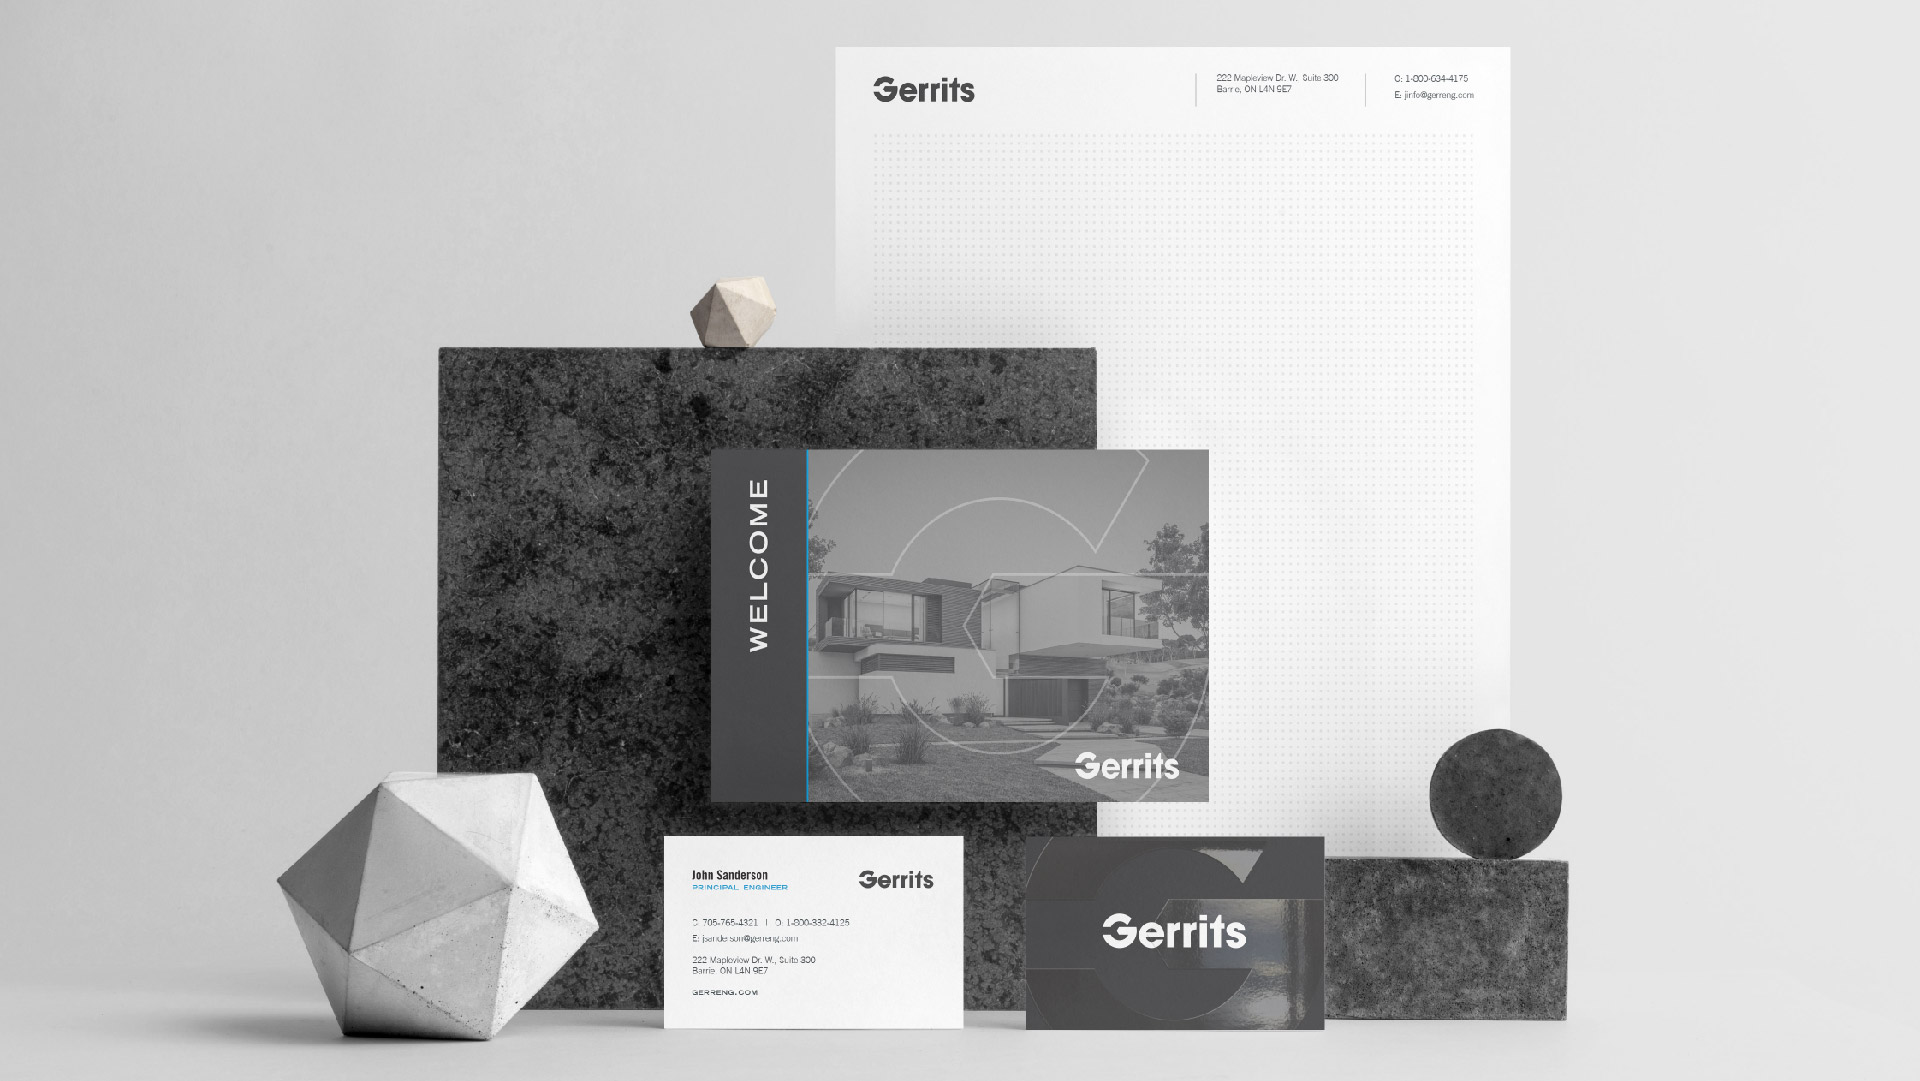 gerrits engineering letterhead mailer and business card designs